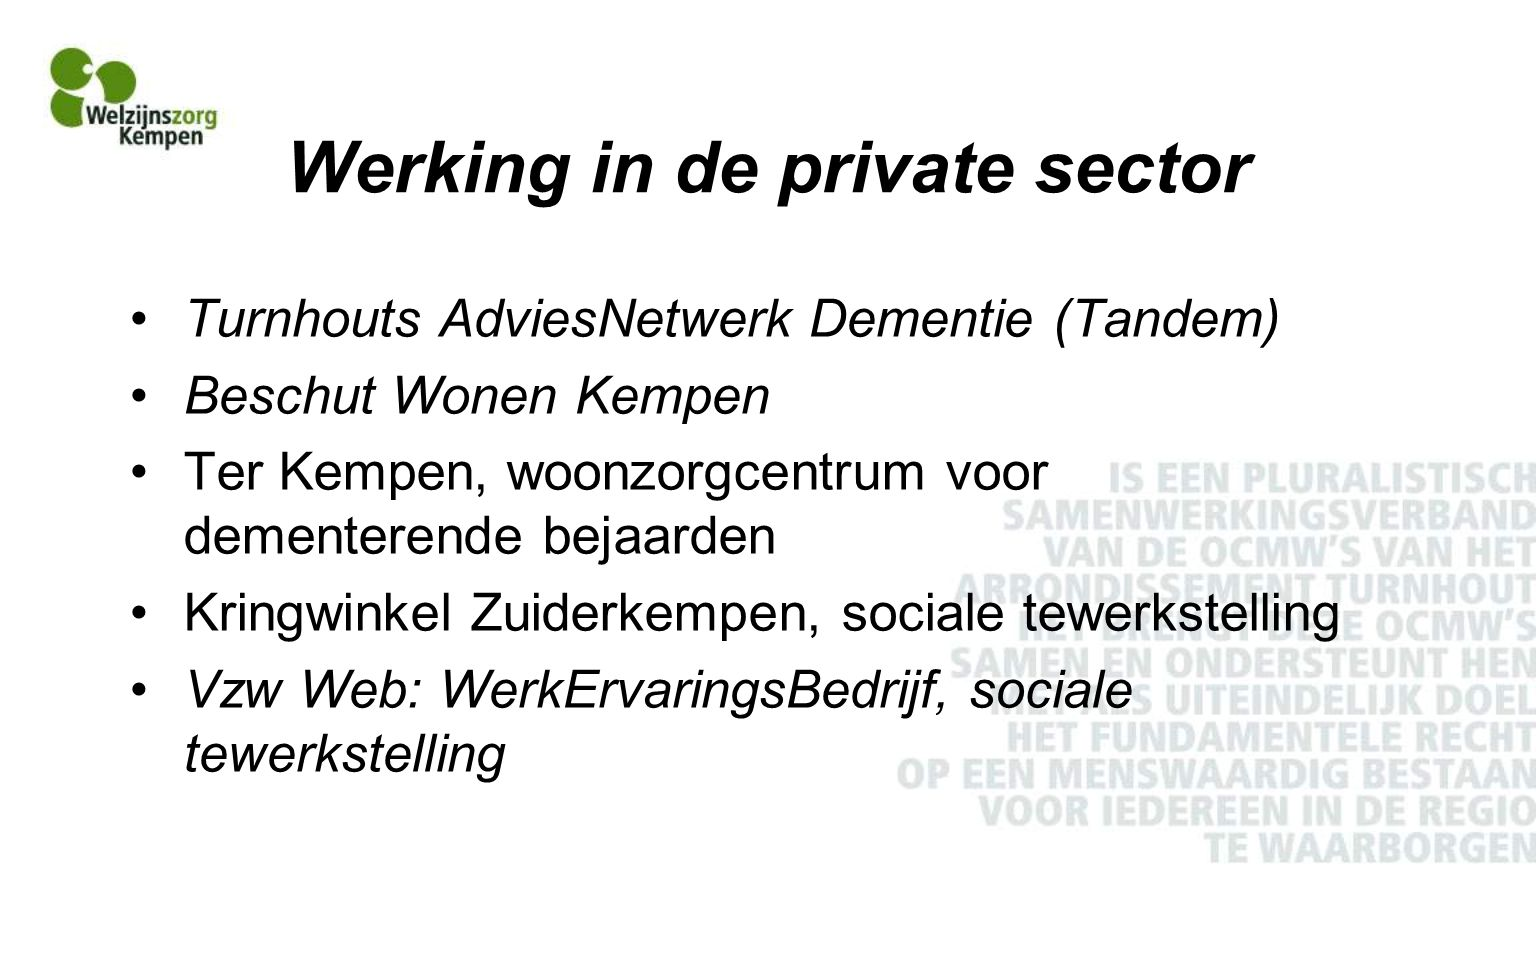 Werking in de private sector